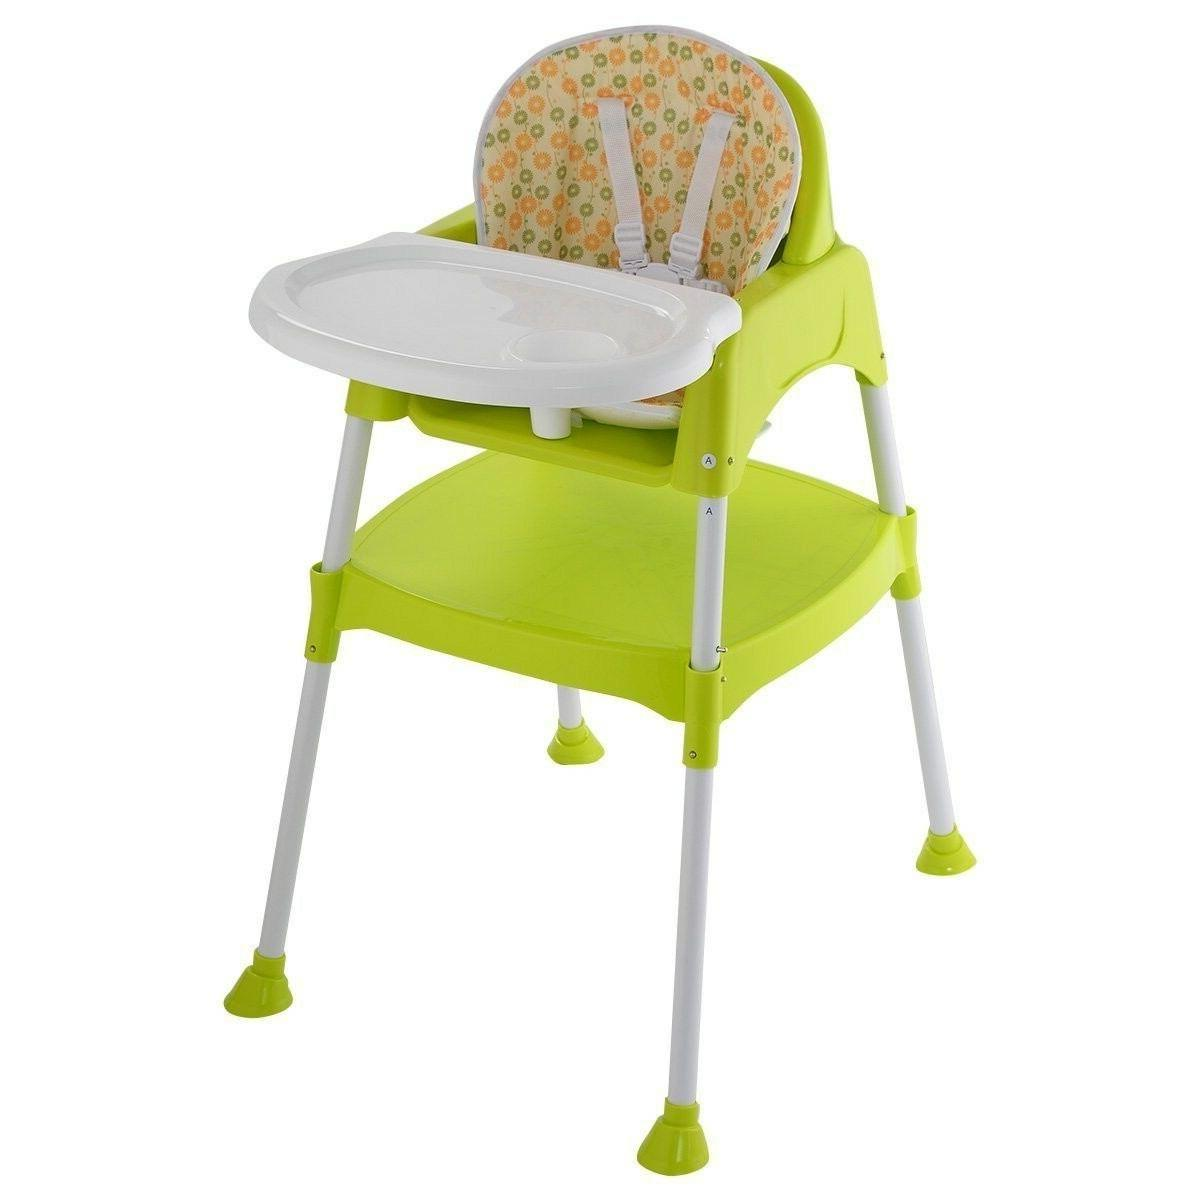 Costzon 3 in 1 Convertible High Chair Table Seat Booster Tod